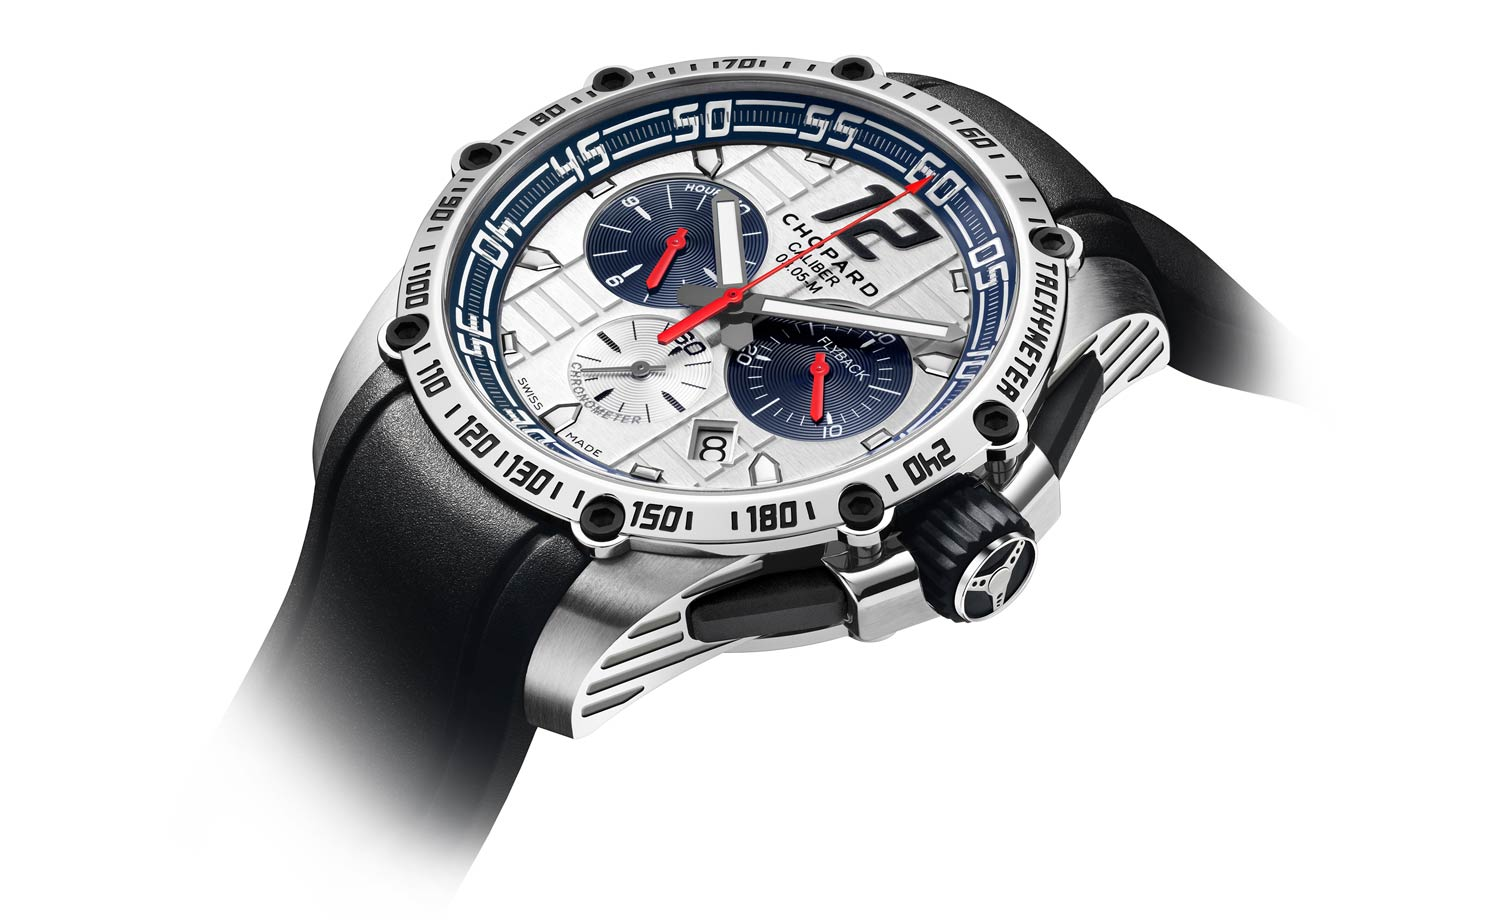 Superfast Chrono Porsche 919 Jacky Ickx Limited Edition watch